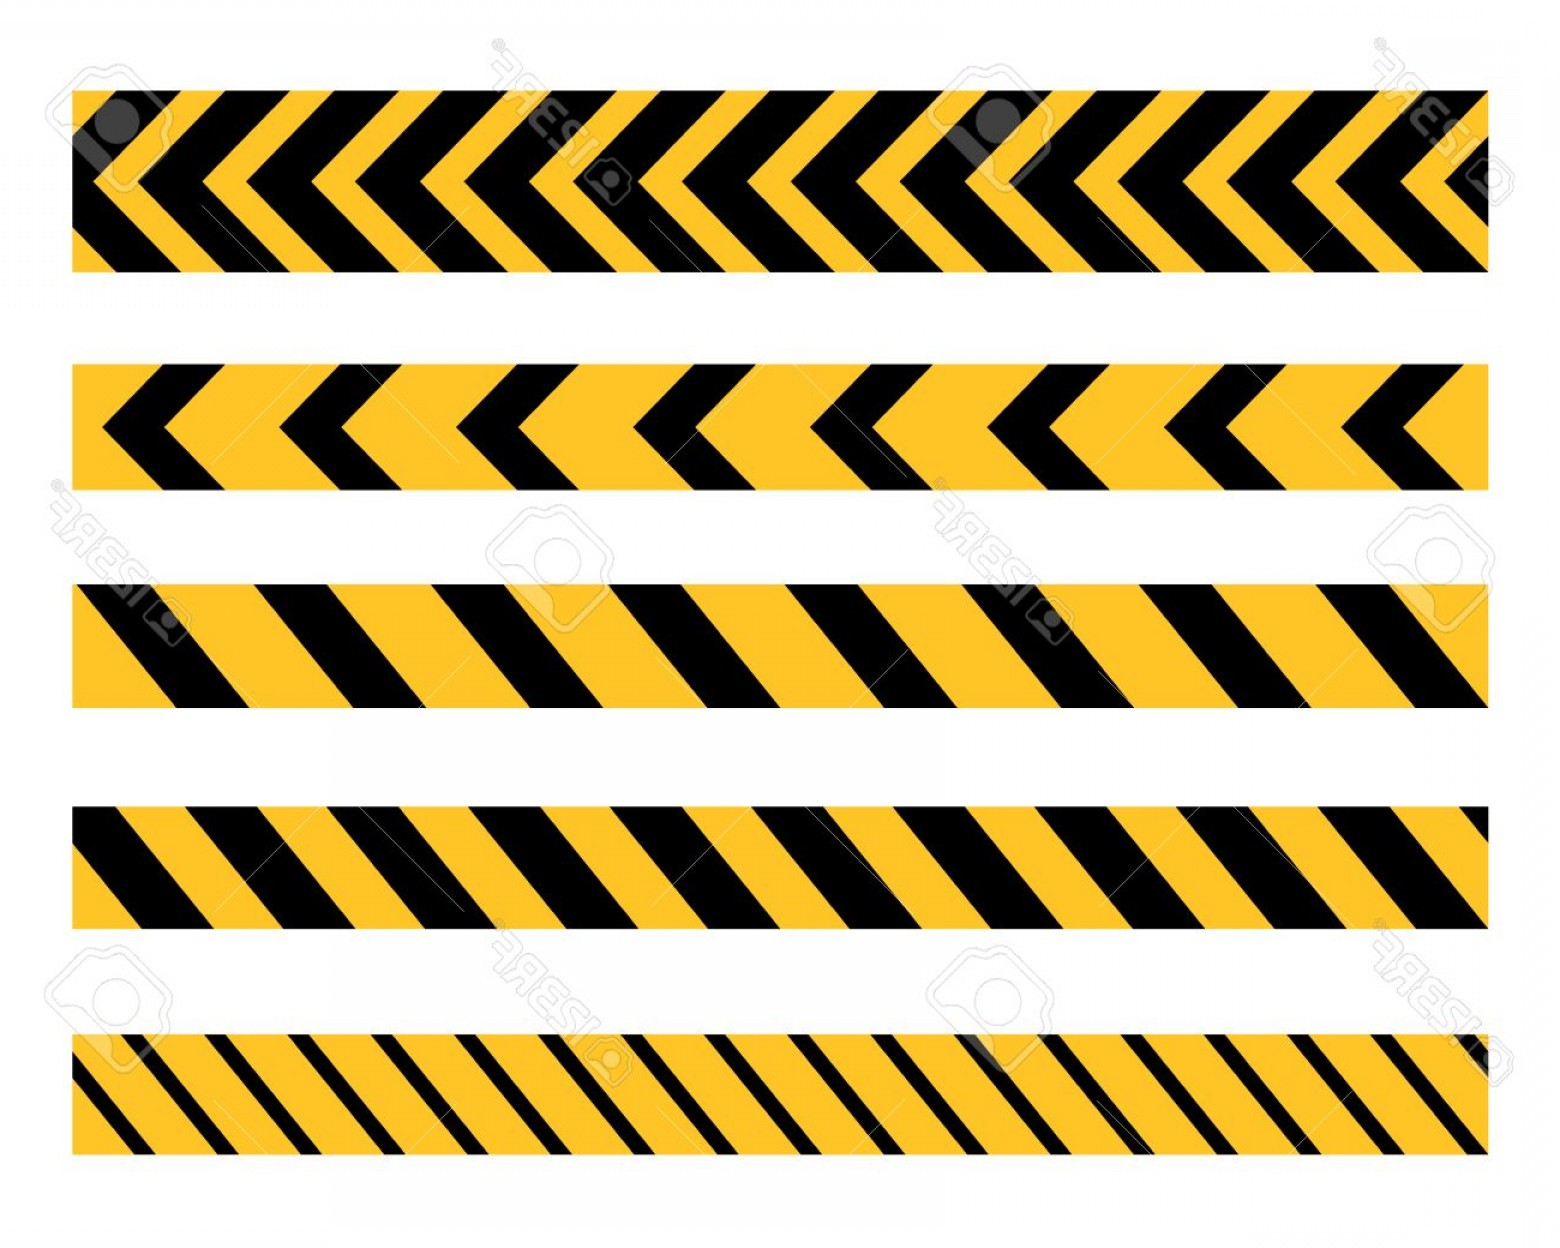 Caution Stripes Vector: Photostock Vector Vector Set Of Danger And Police Tape Lines For Restriction And Dangerous Zones Construction Site